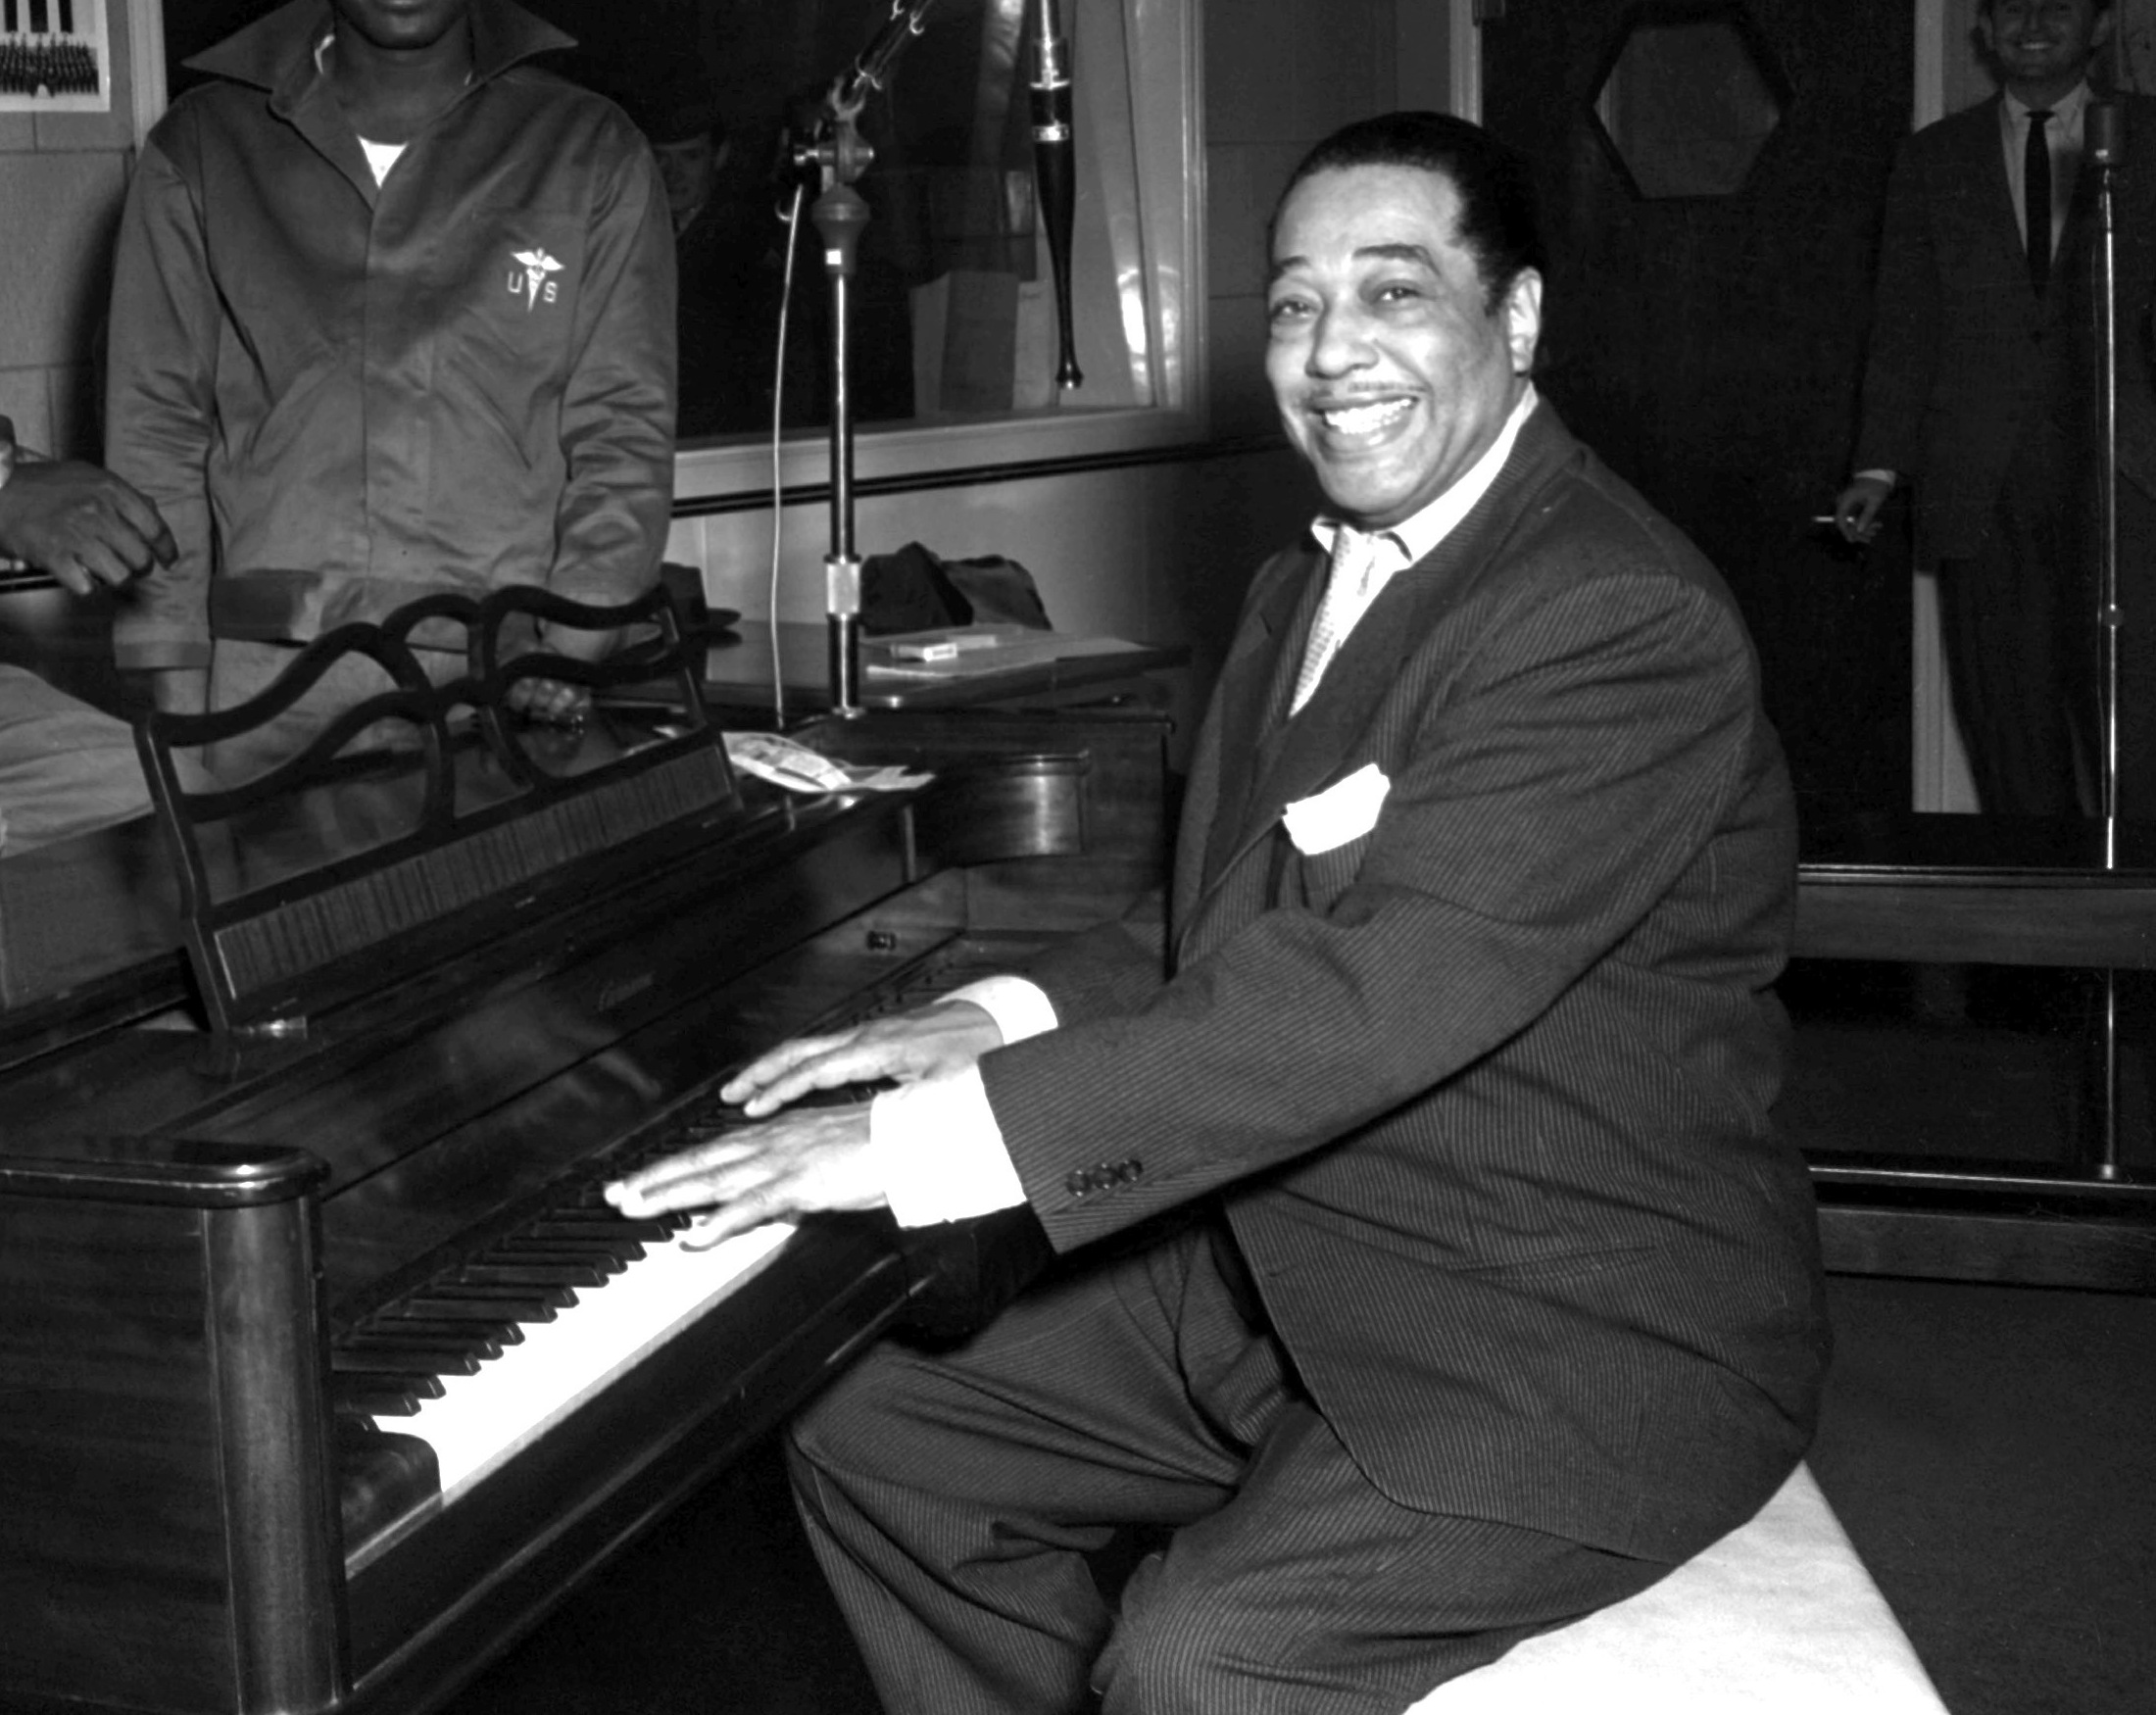 a biography of duke ellington the american jazz composer